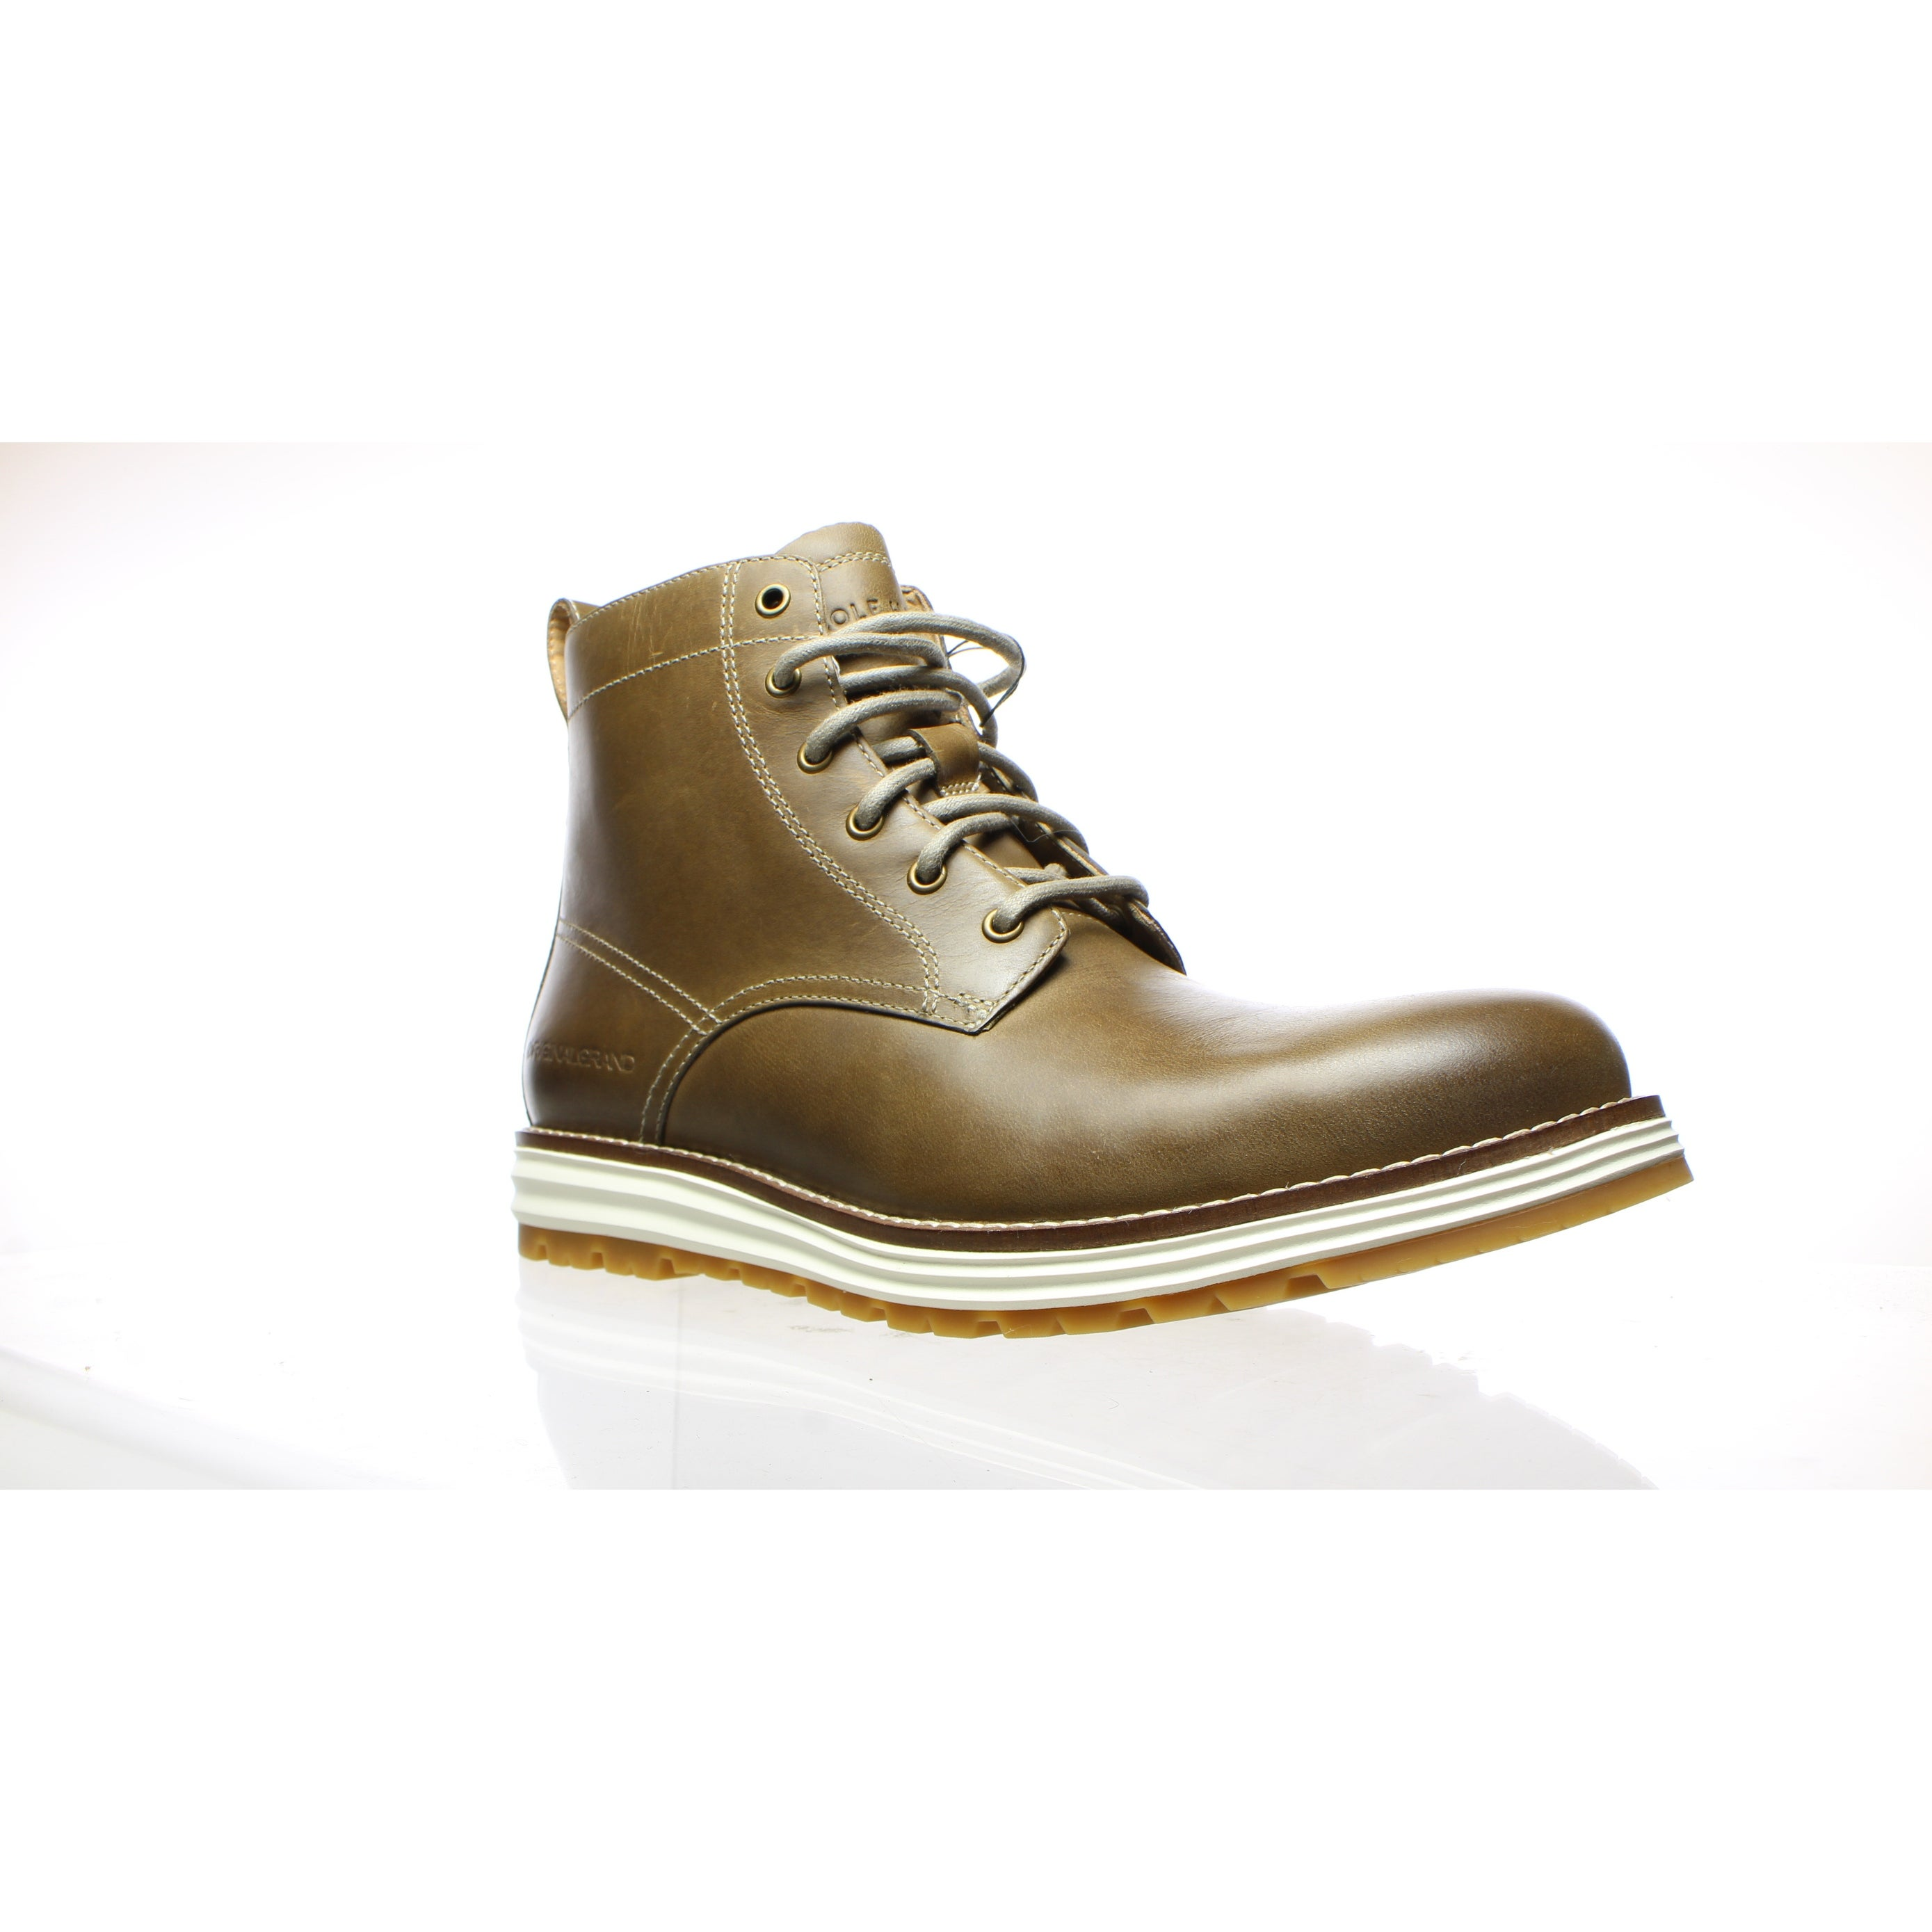 Boot Khaki Ankle Boots Size